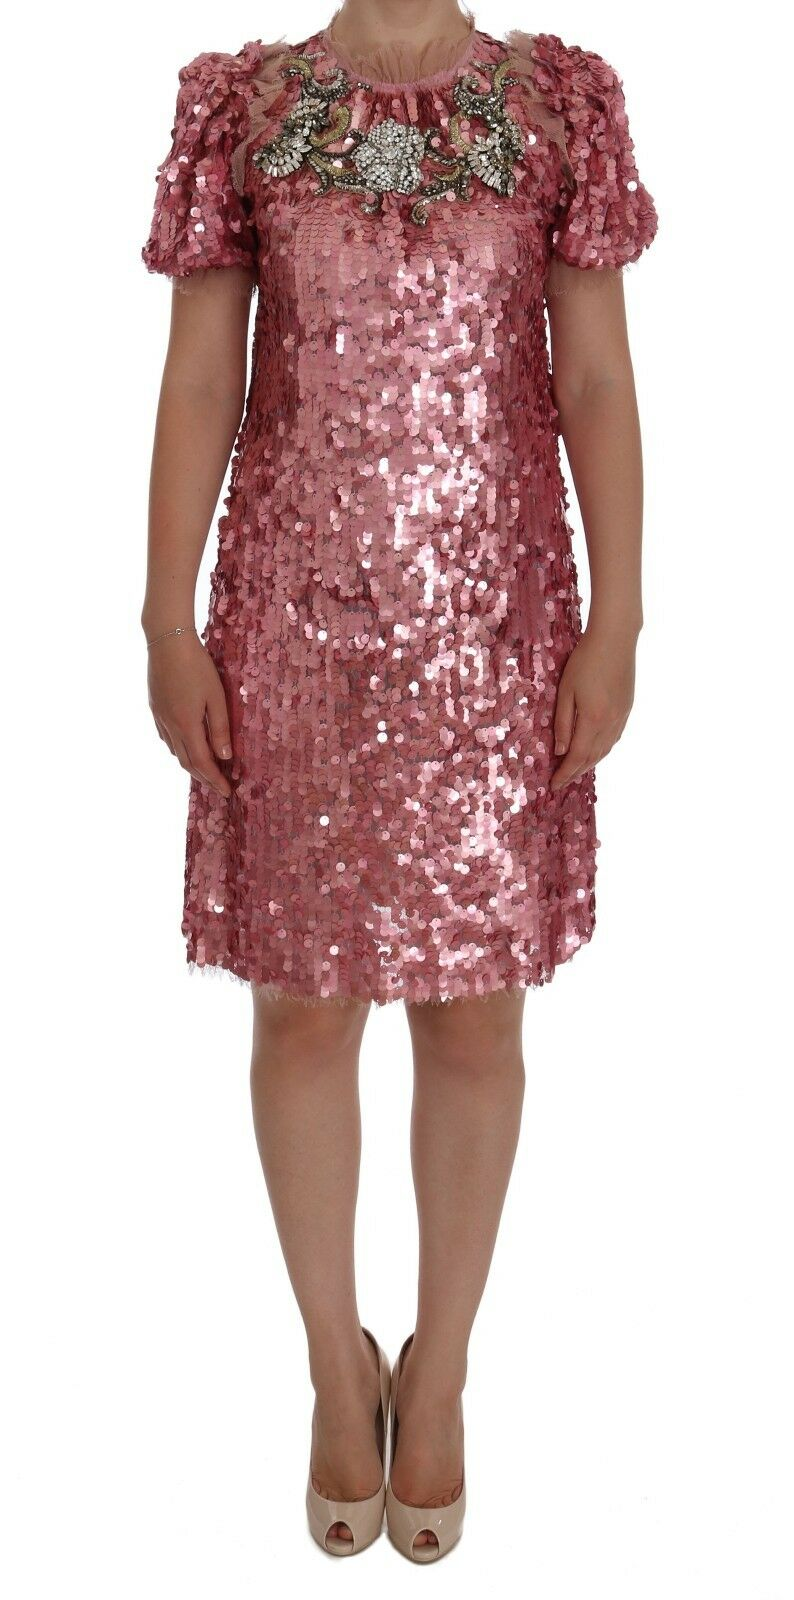 Dolce & Gabbana Women's Sequined Crystal Shift Dress Pink DR1012 - IT40|S